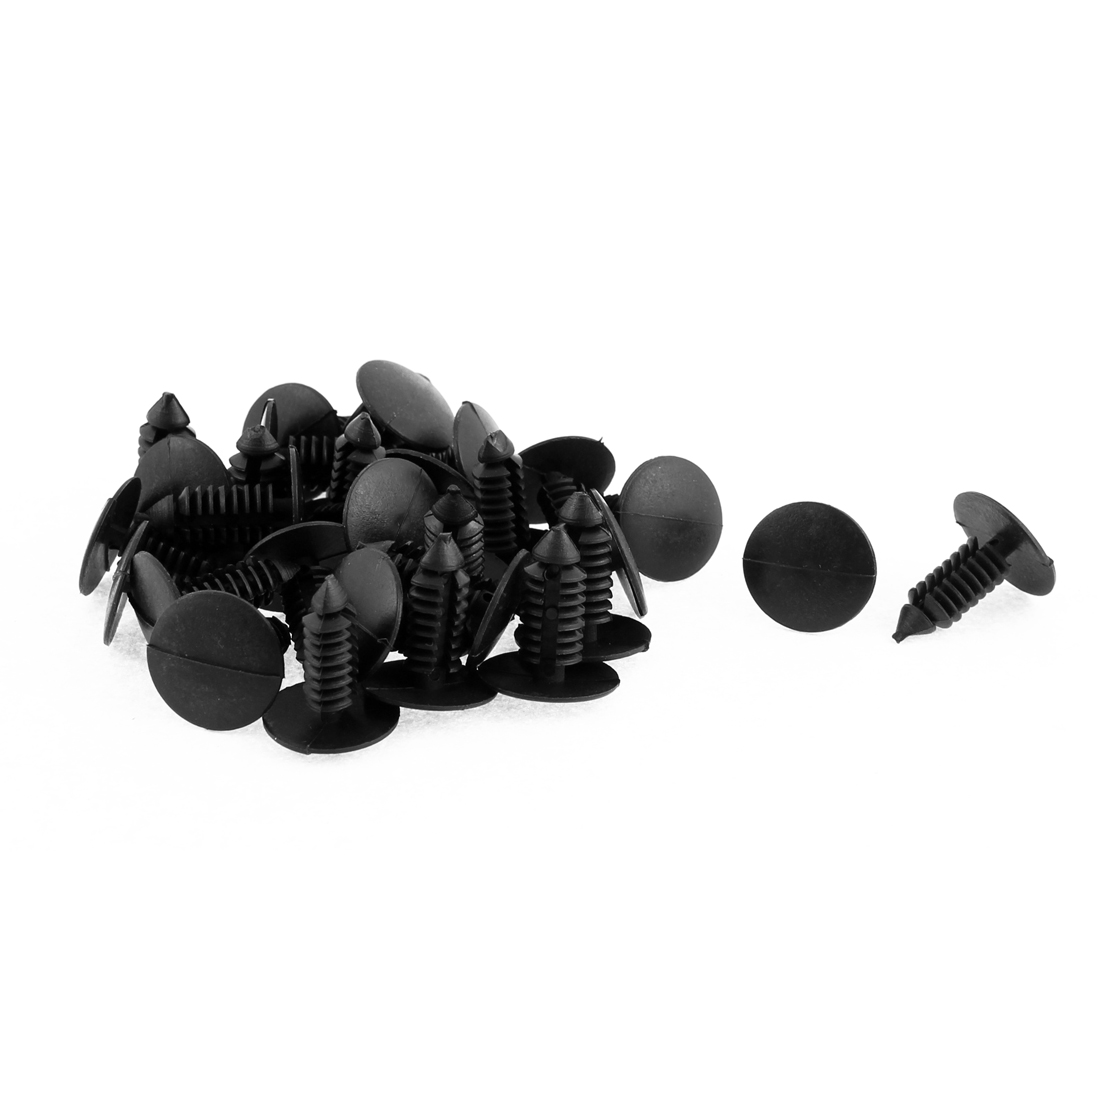 8mm x 6mm Black Plastic Rivet Retainer Fender Car Bumper Push Clip 30pcs